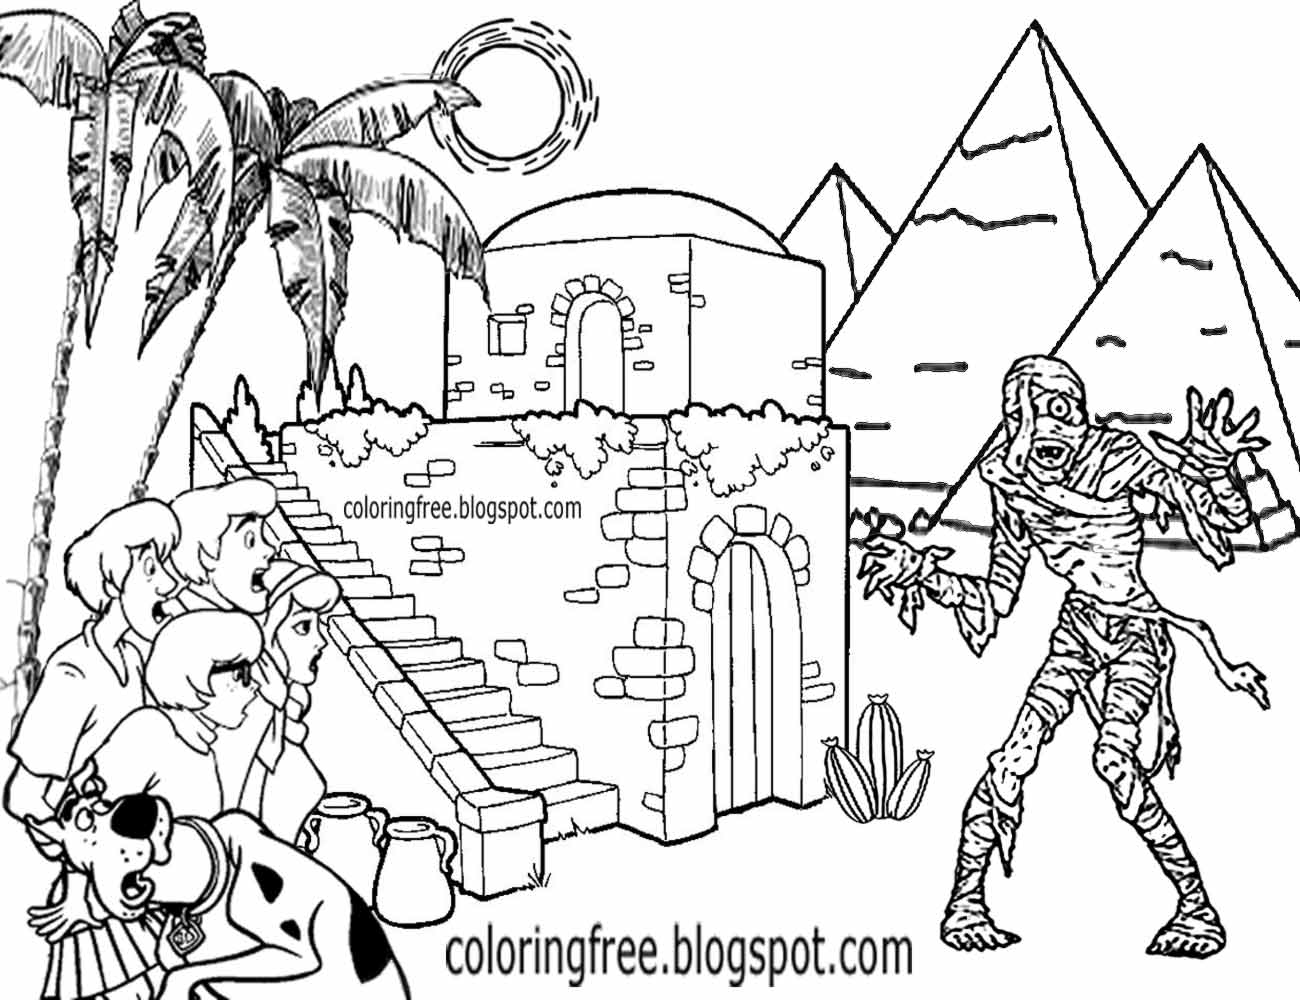 1300x1000 Free Coloring Pages Printable Pictures To Color Kids Drawing Ideas